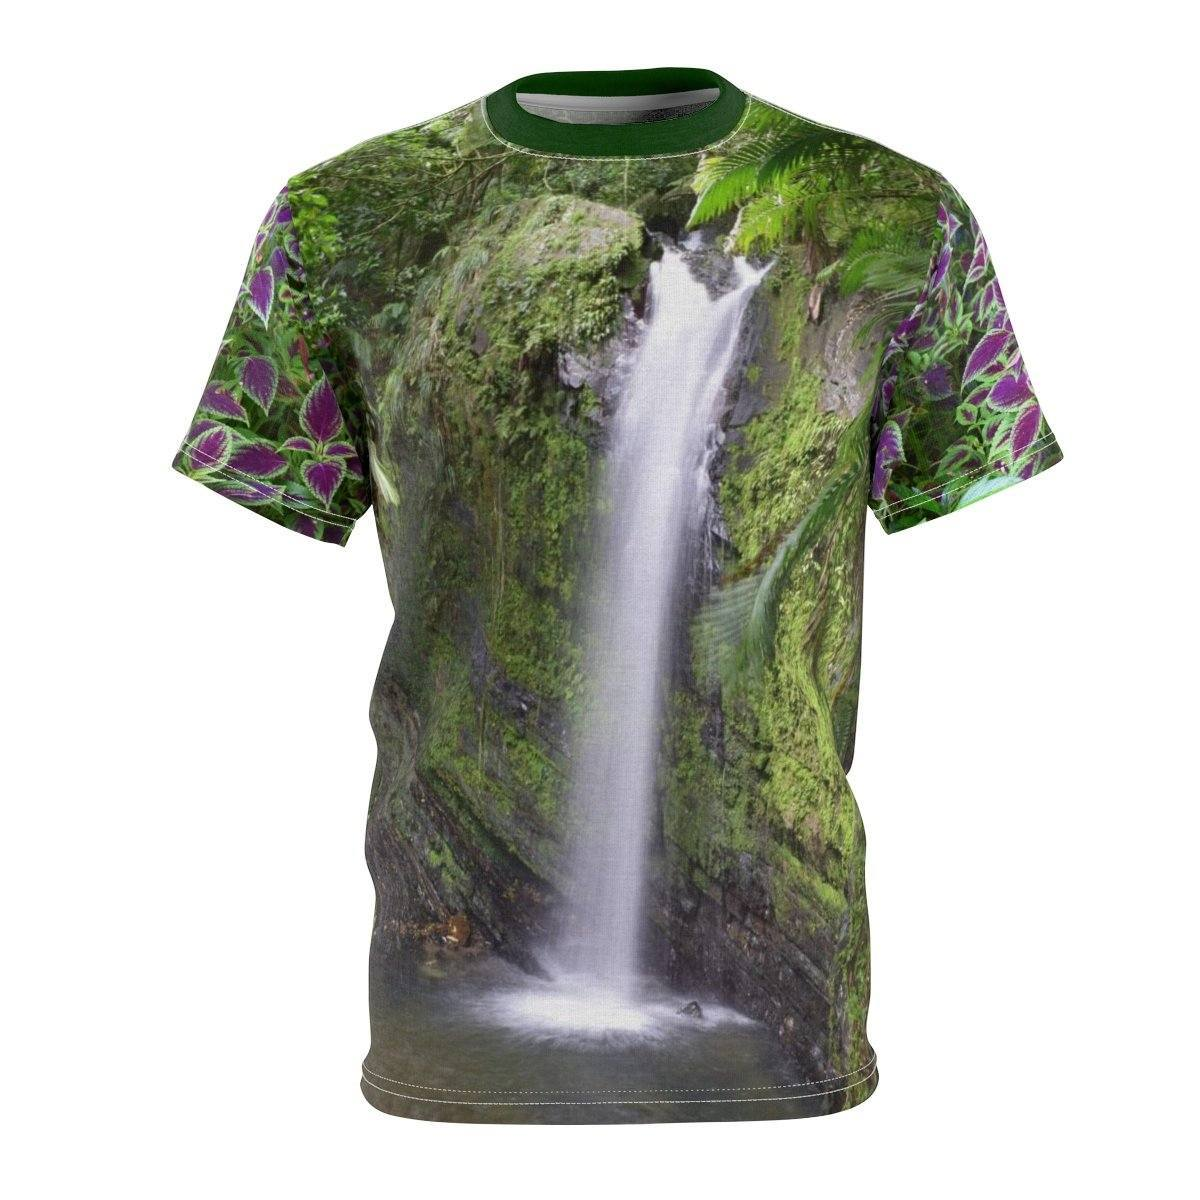 Unisex AOP Cut & Sew Tee - Waterfalls of El Yunque rain forest/Cataratas de El Yunque PR All Over Prints Printify